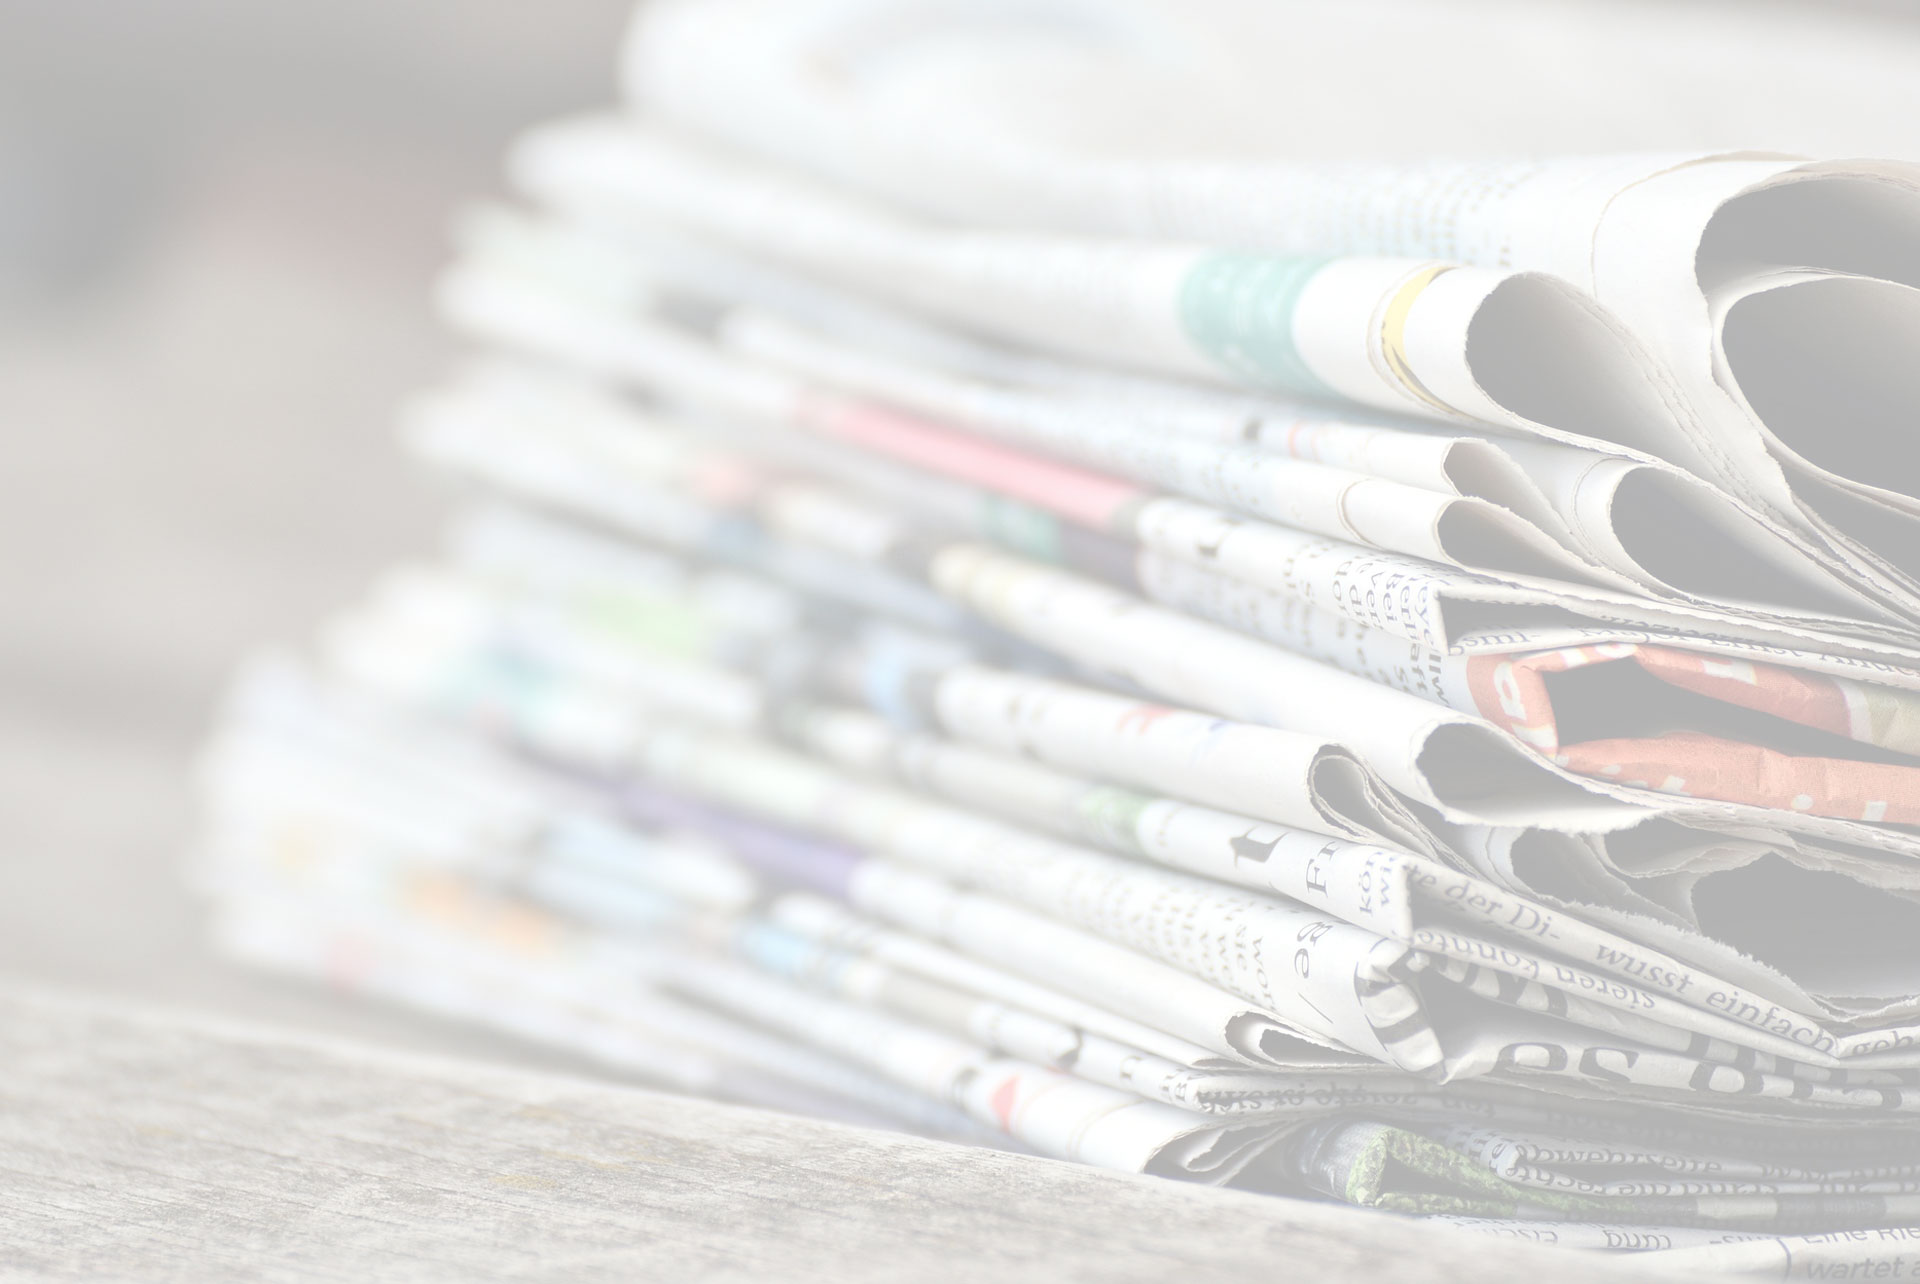 Chievo Verona-Inter